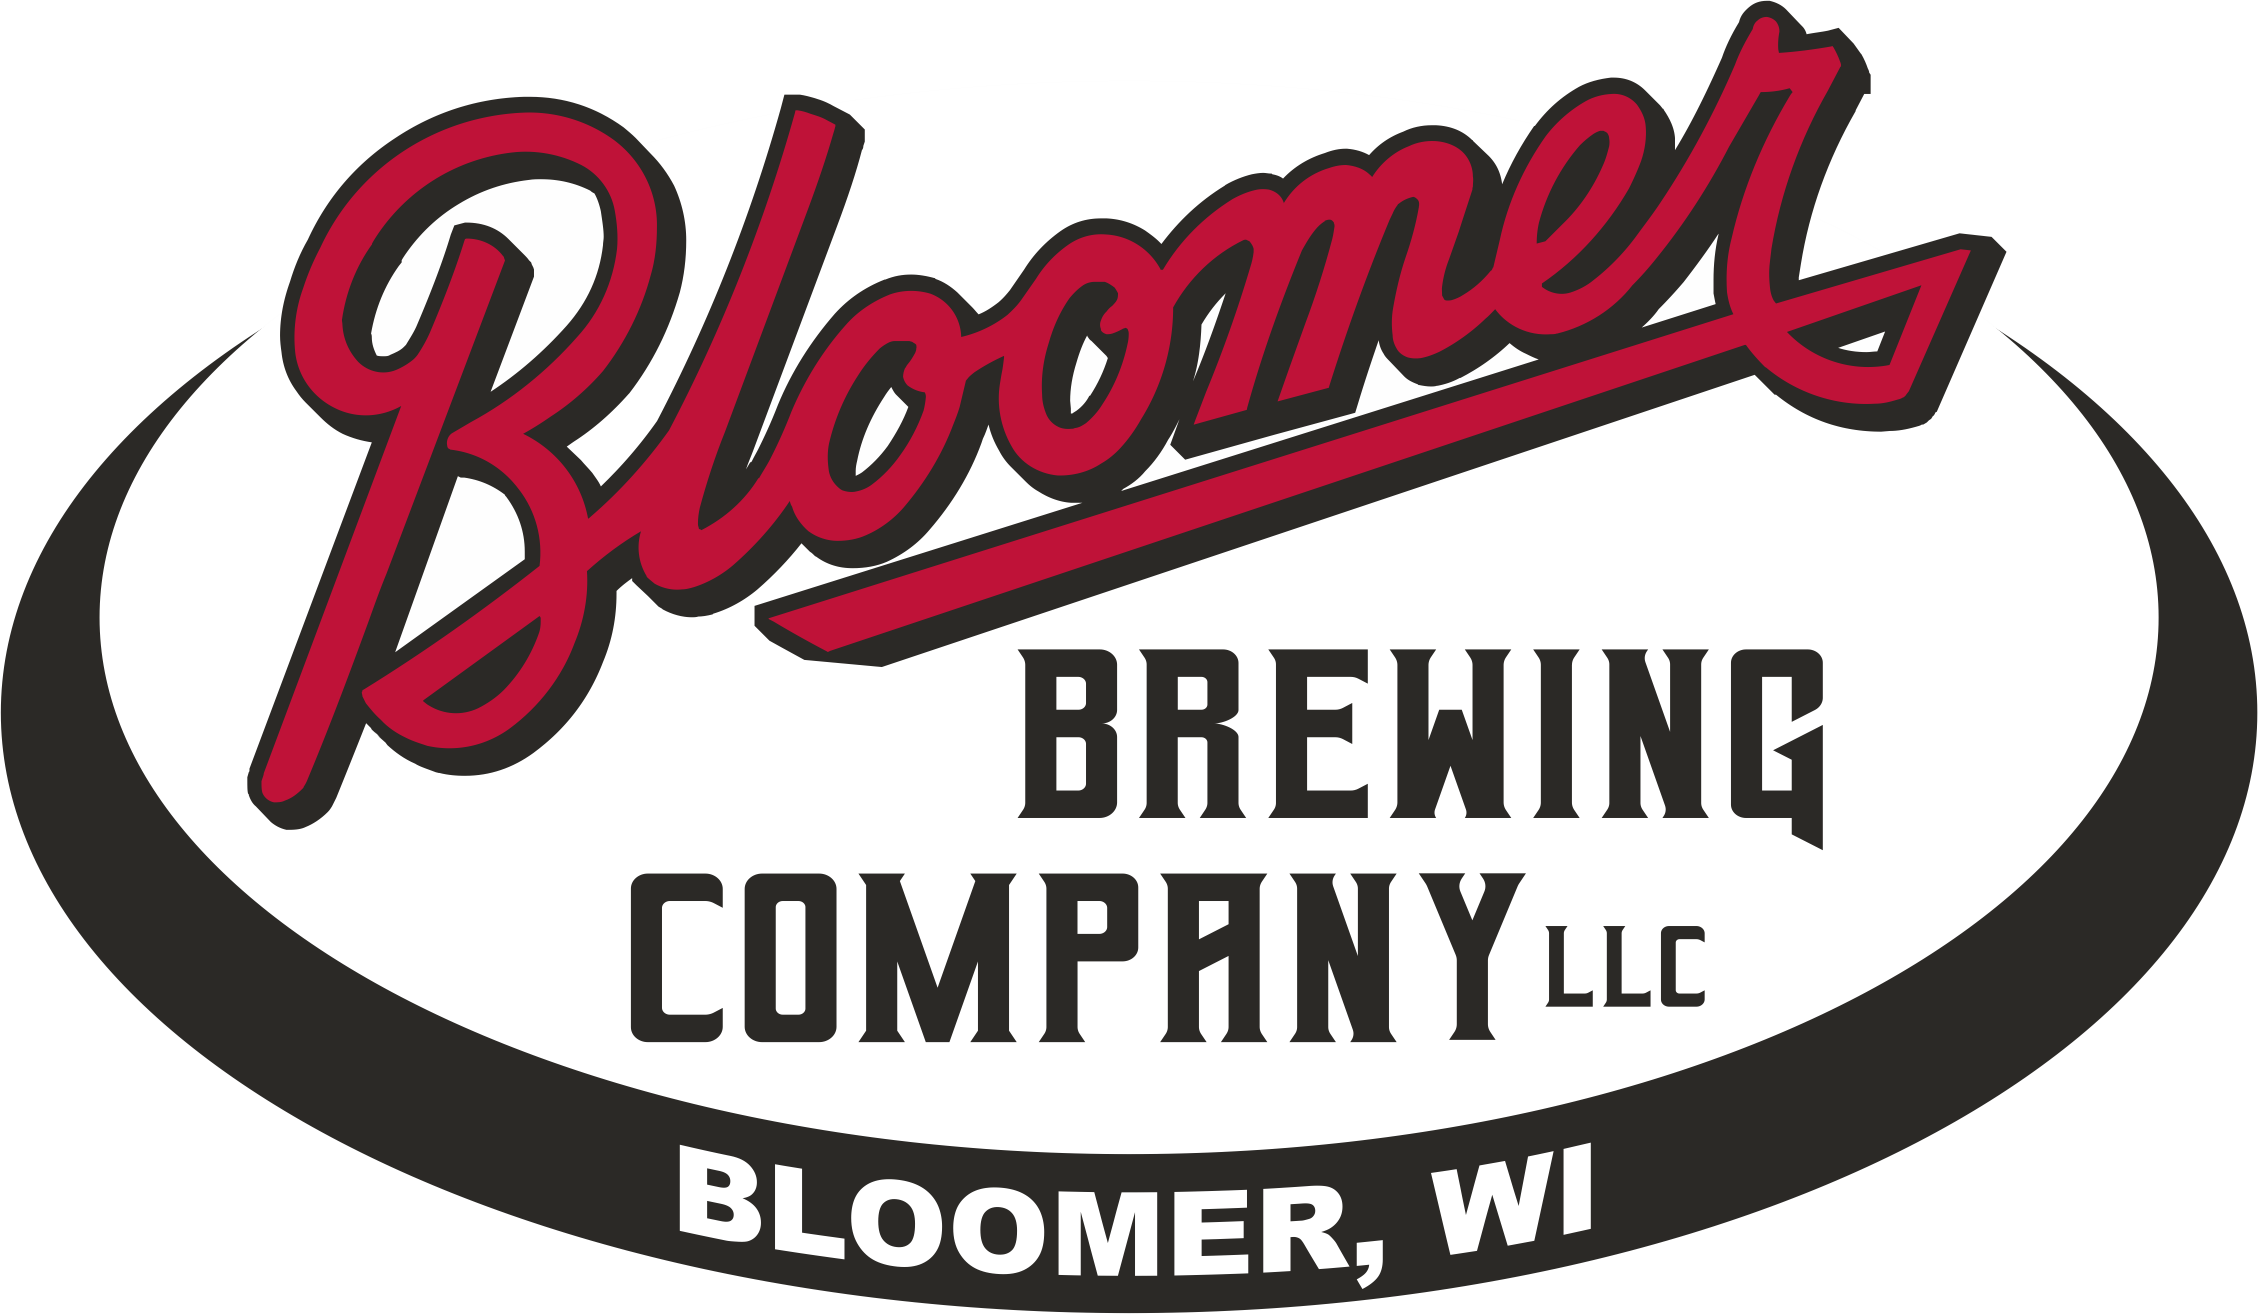 Bloomer Brewing Co., LLC